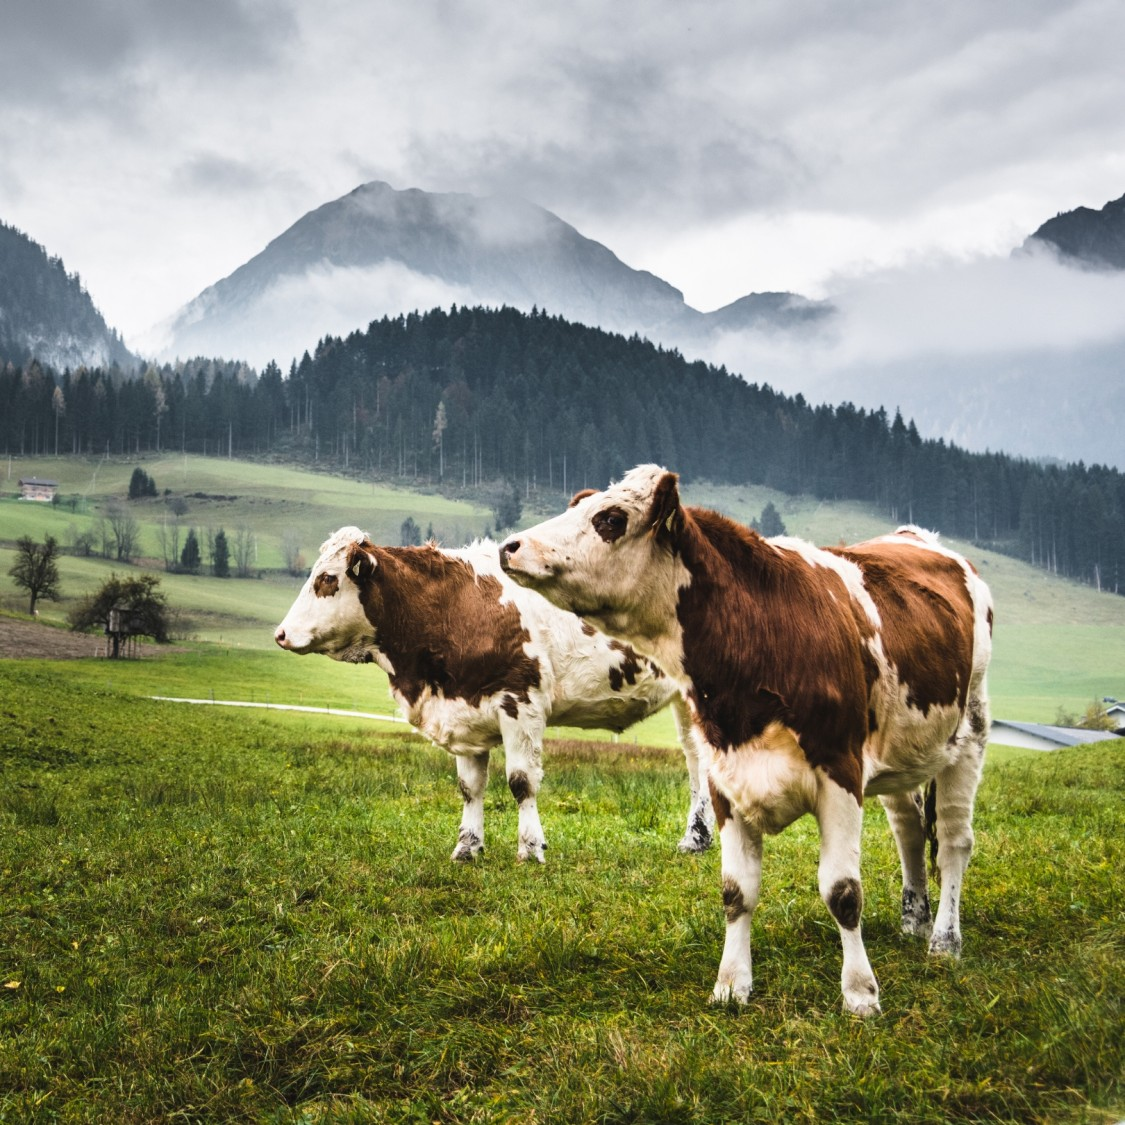 The digitalization of livestock farming promises higher yields and increased sustainability